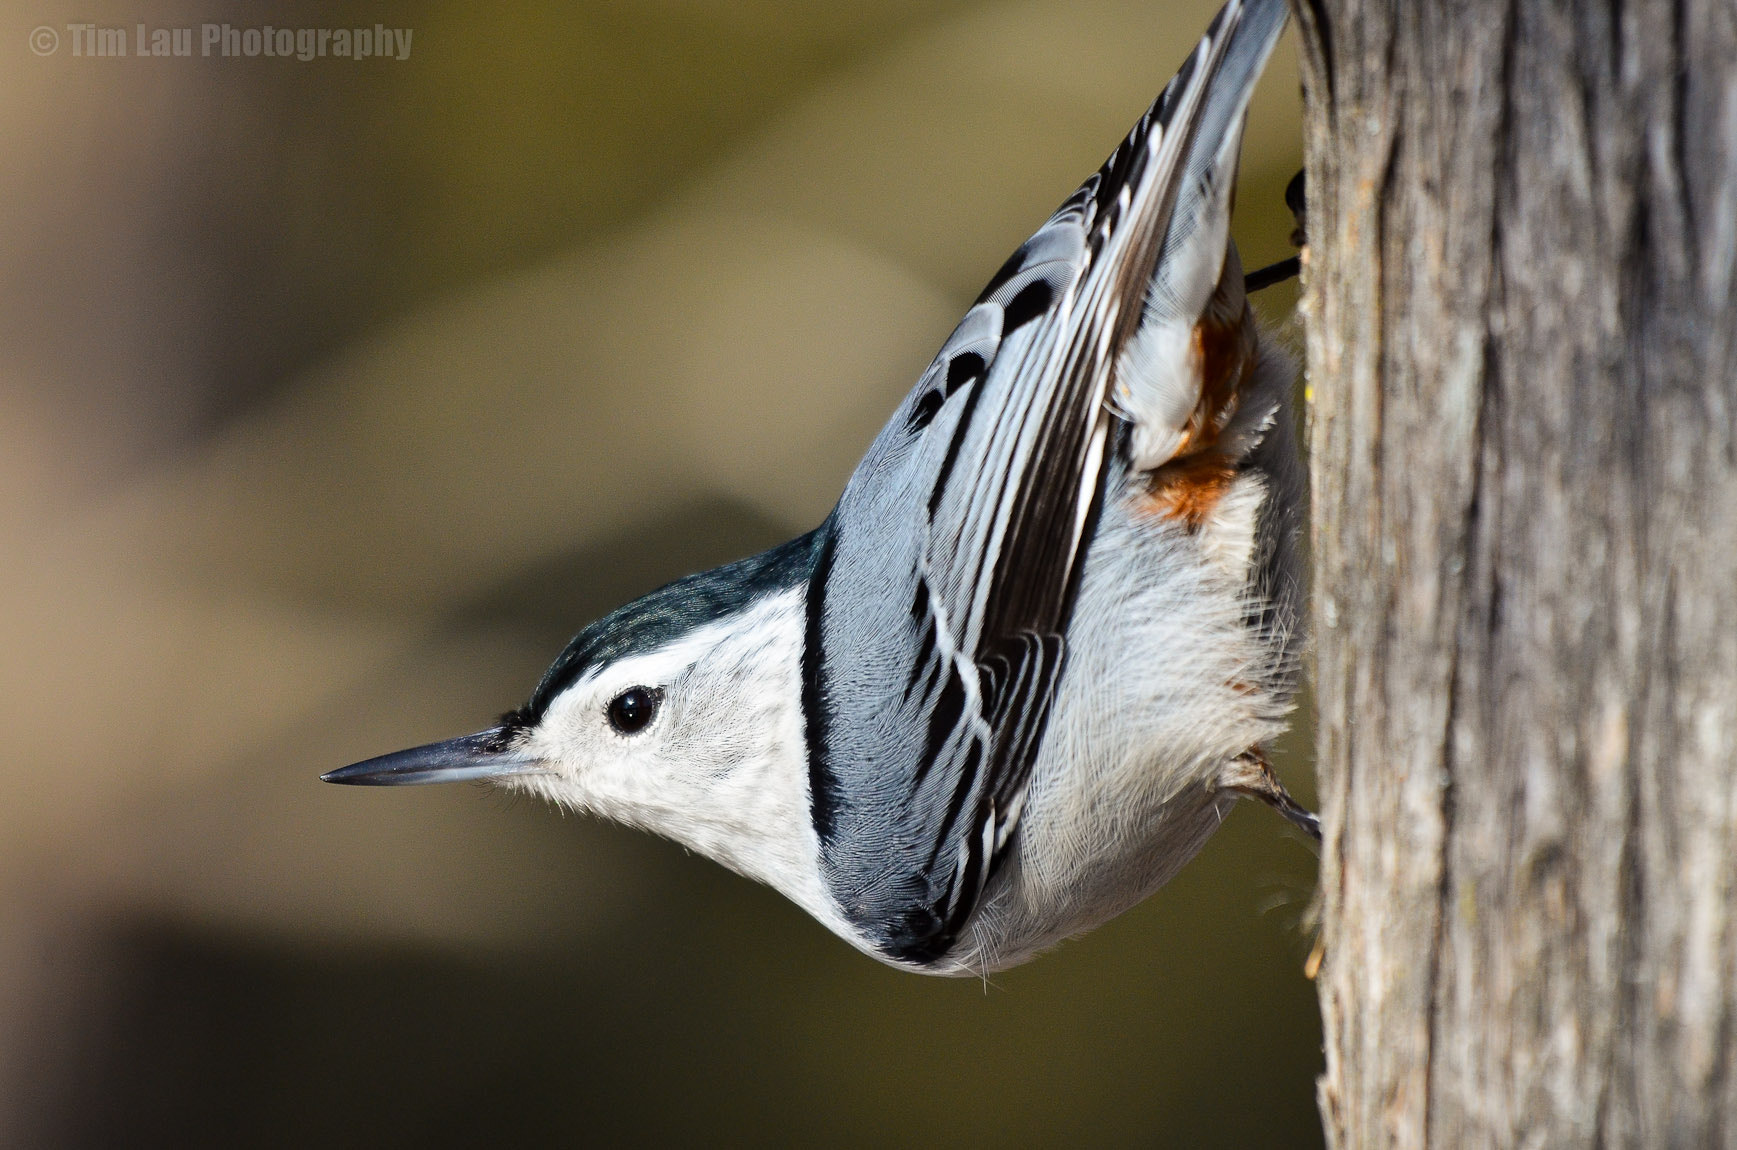 Photograph Nuthatch on alert by Tim Lau on 500px